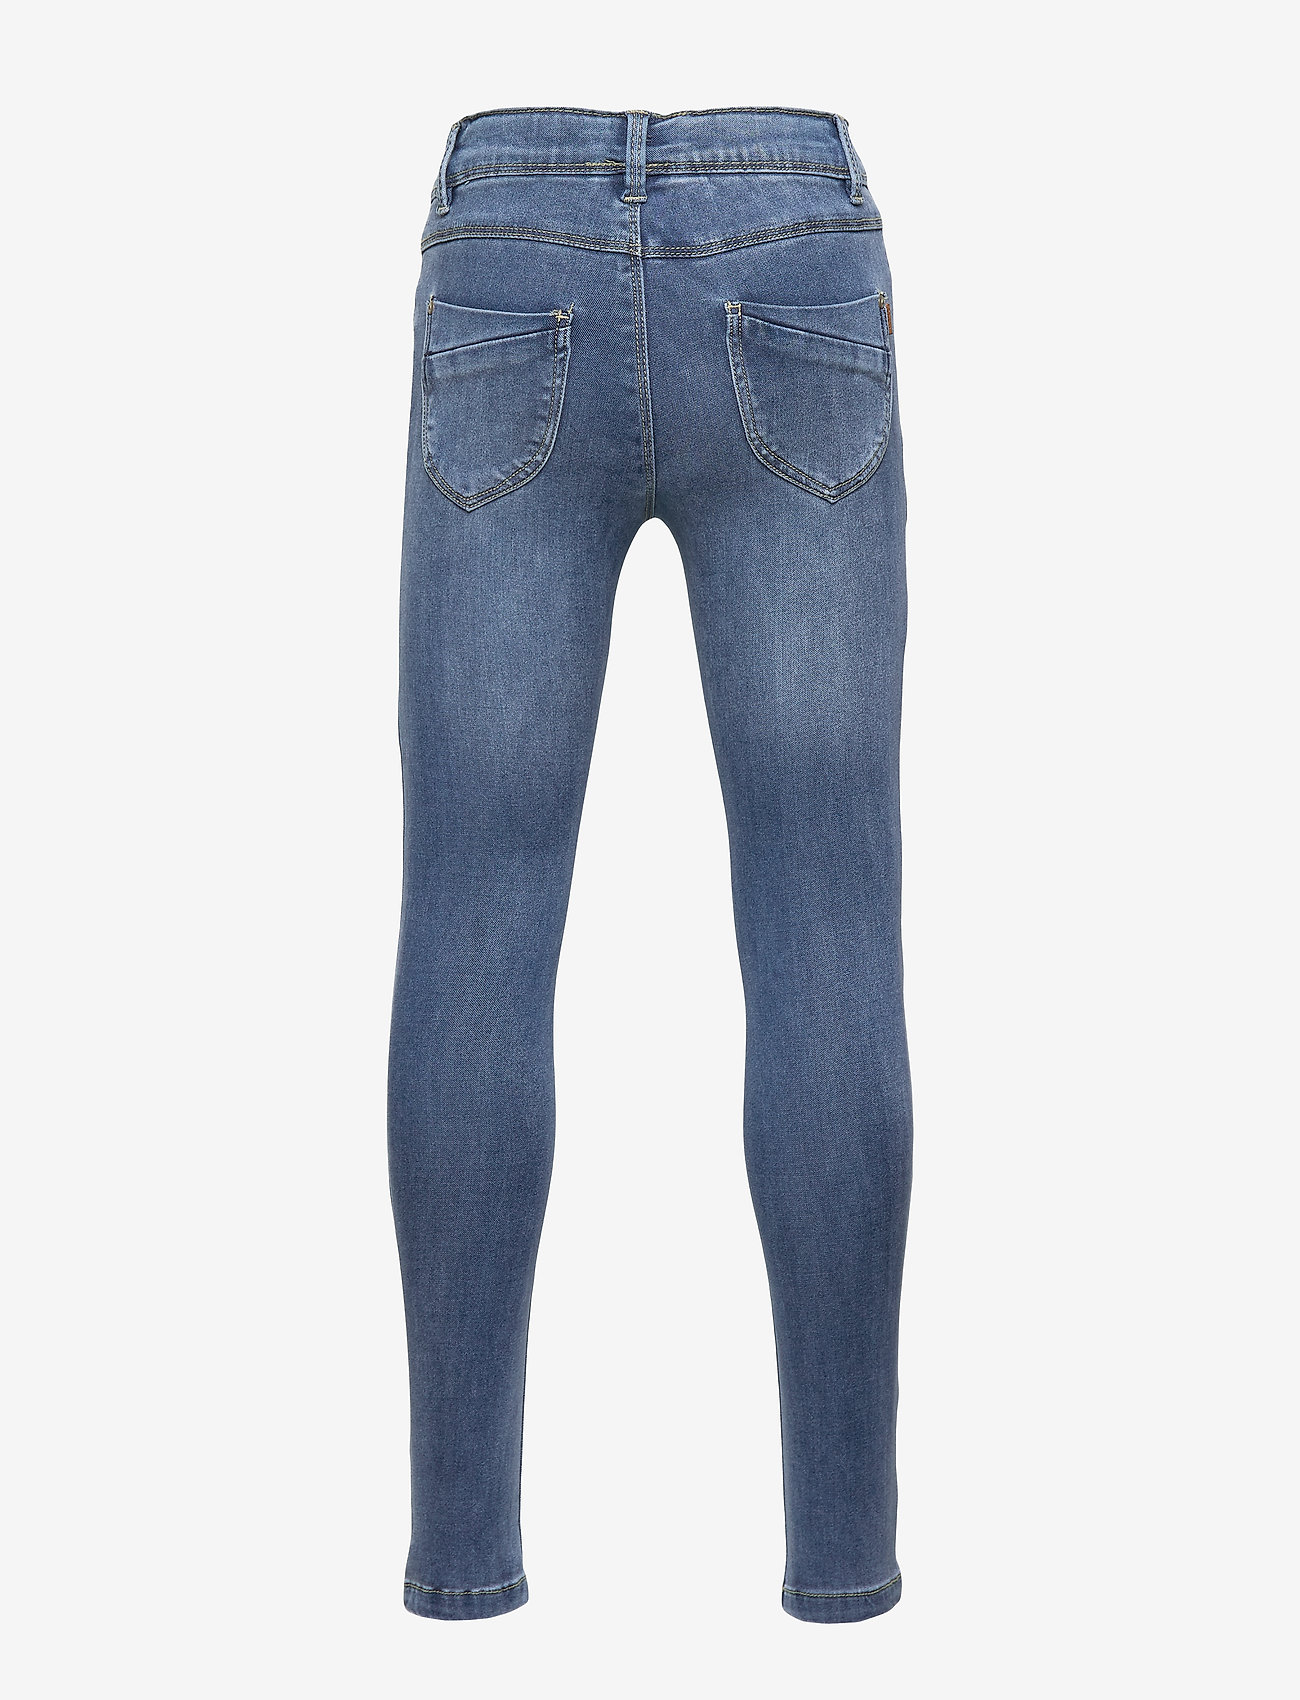 Nkfpolly Dnmtoras 2311 Legging Noos (Medium Blue Denim) (23.99 €) - name it lfNsU